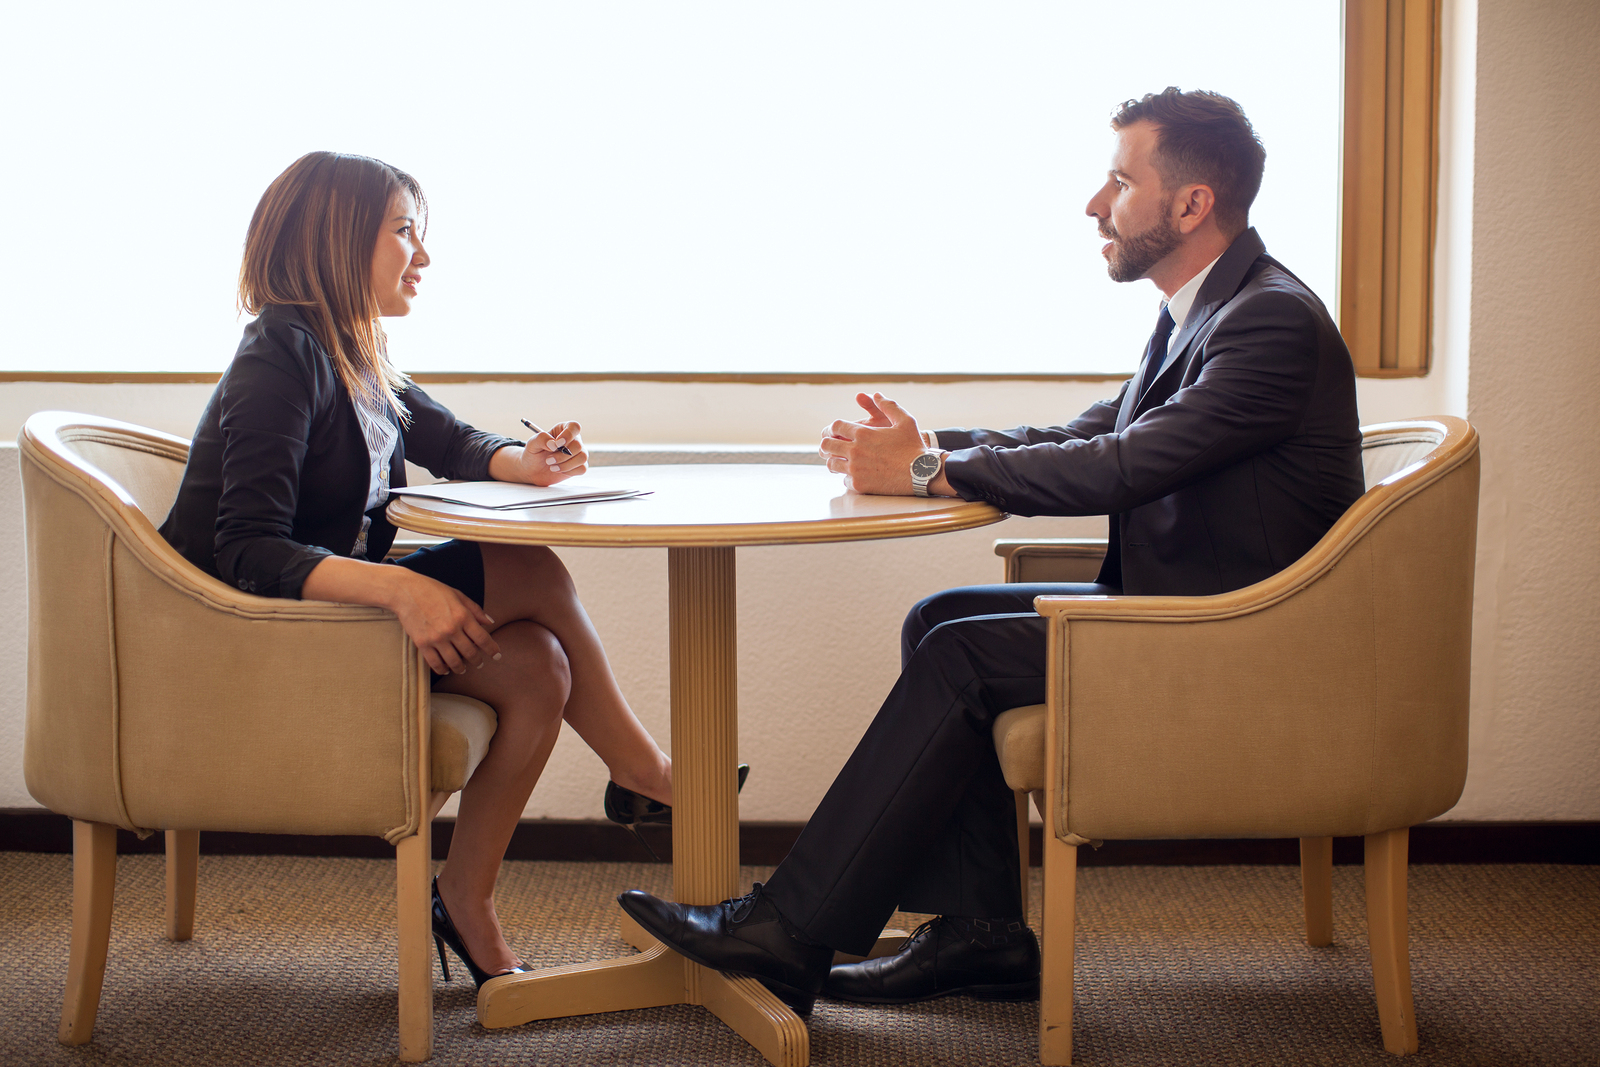 Sales Job Interview Preparation: Common Questions and Answers